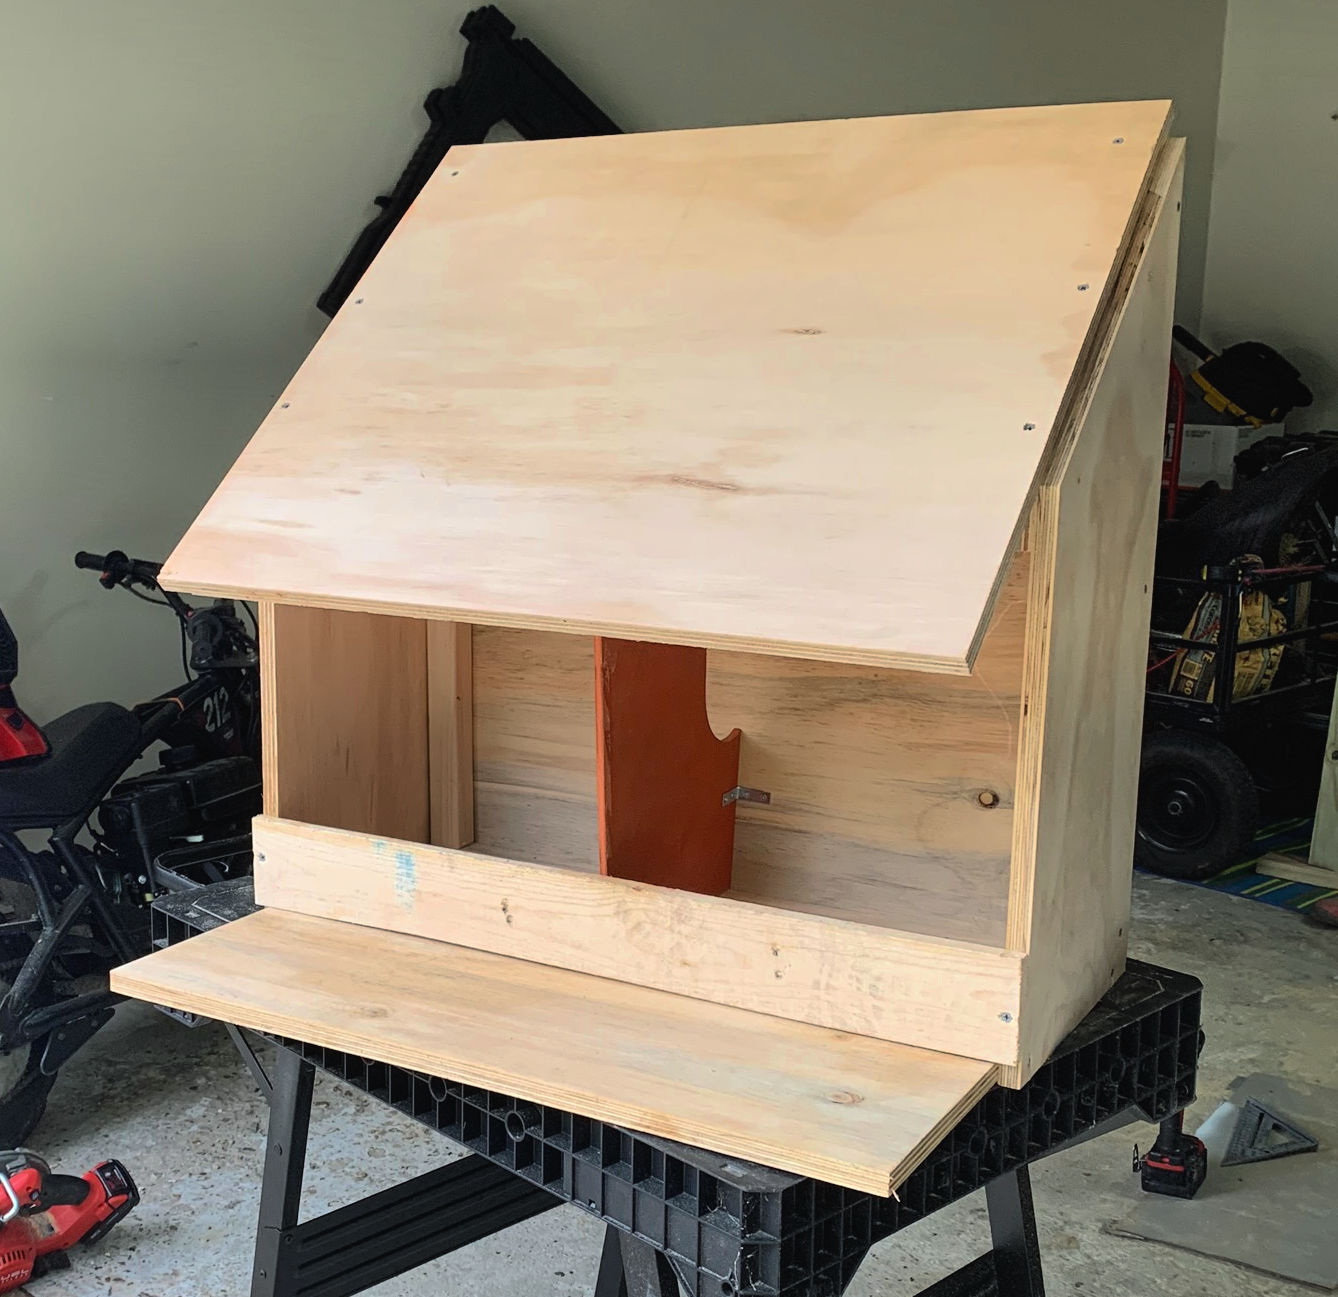 top of nesting box attached using screws